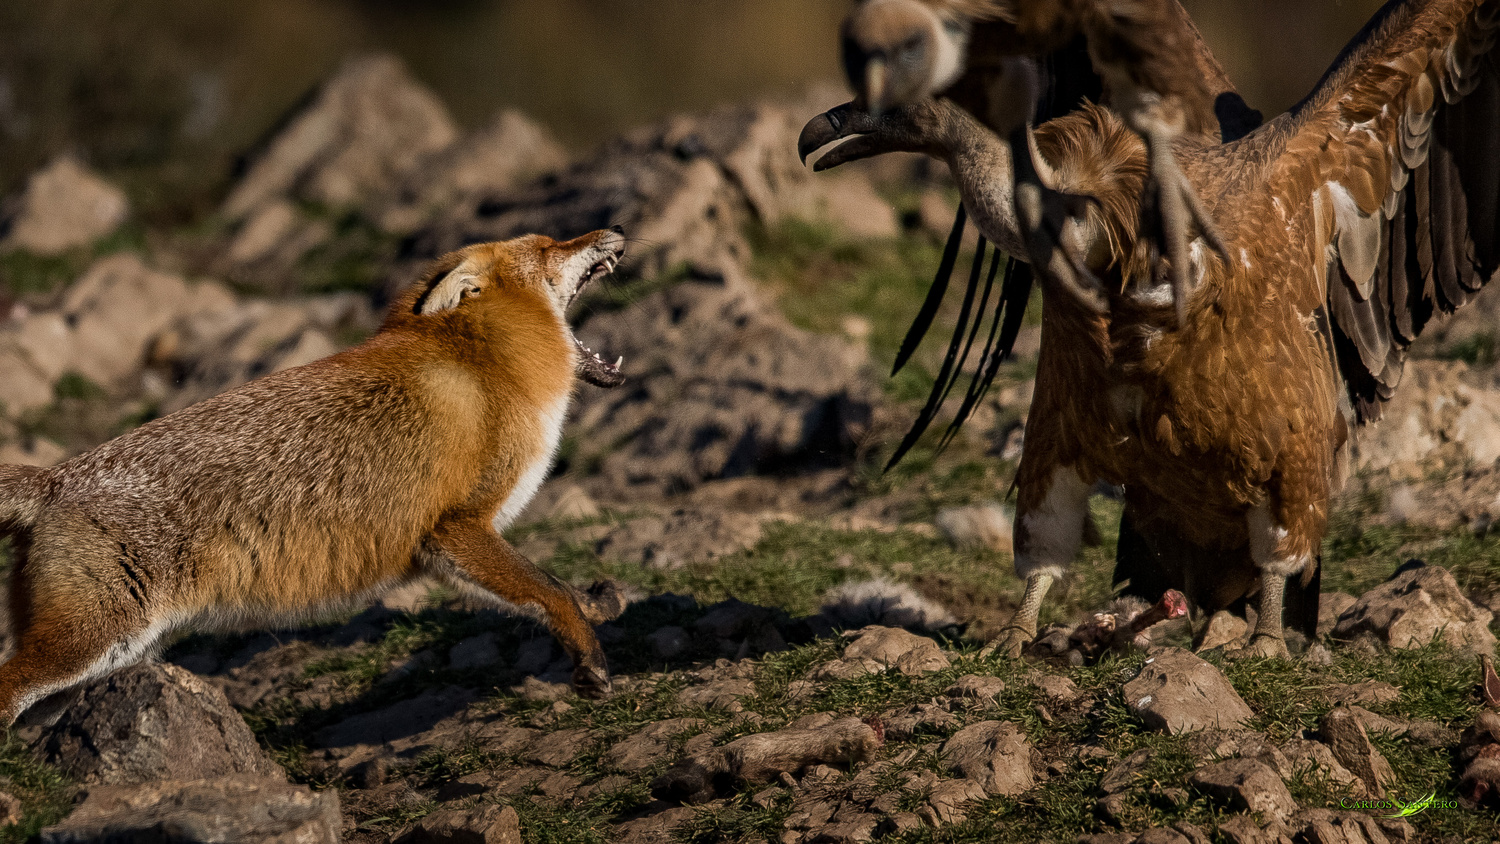 The Fight by Carlos Santero